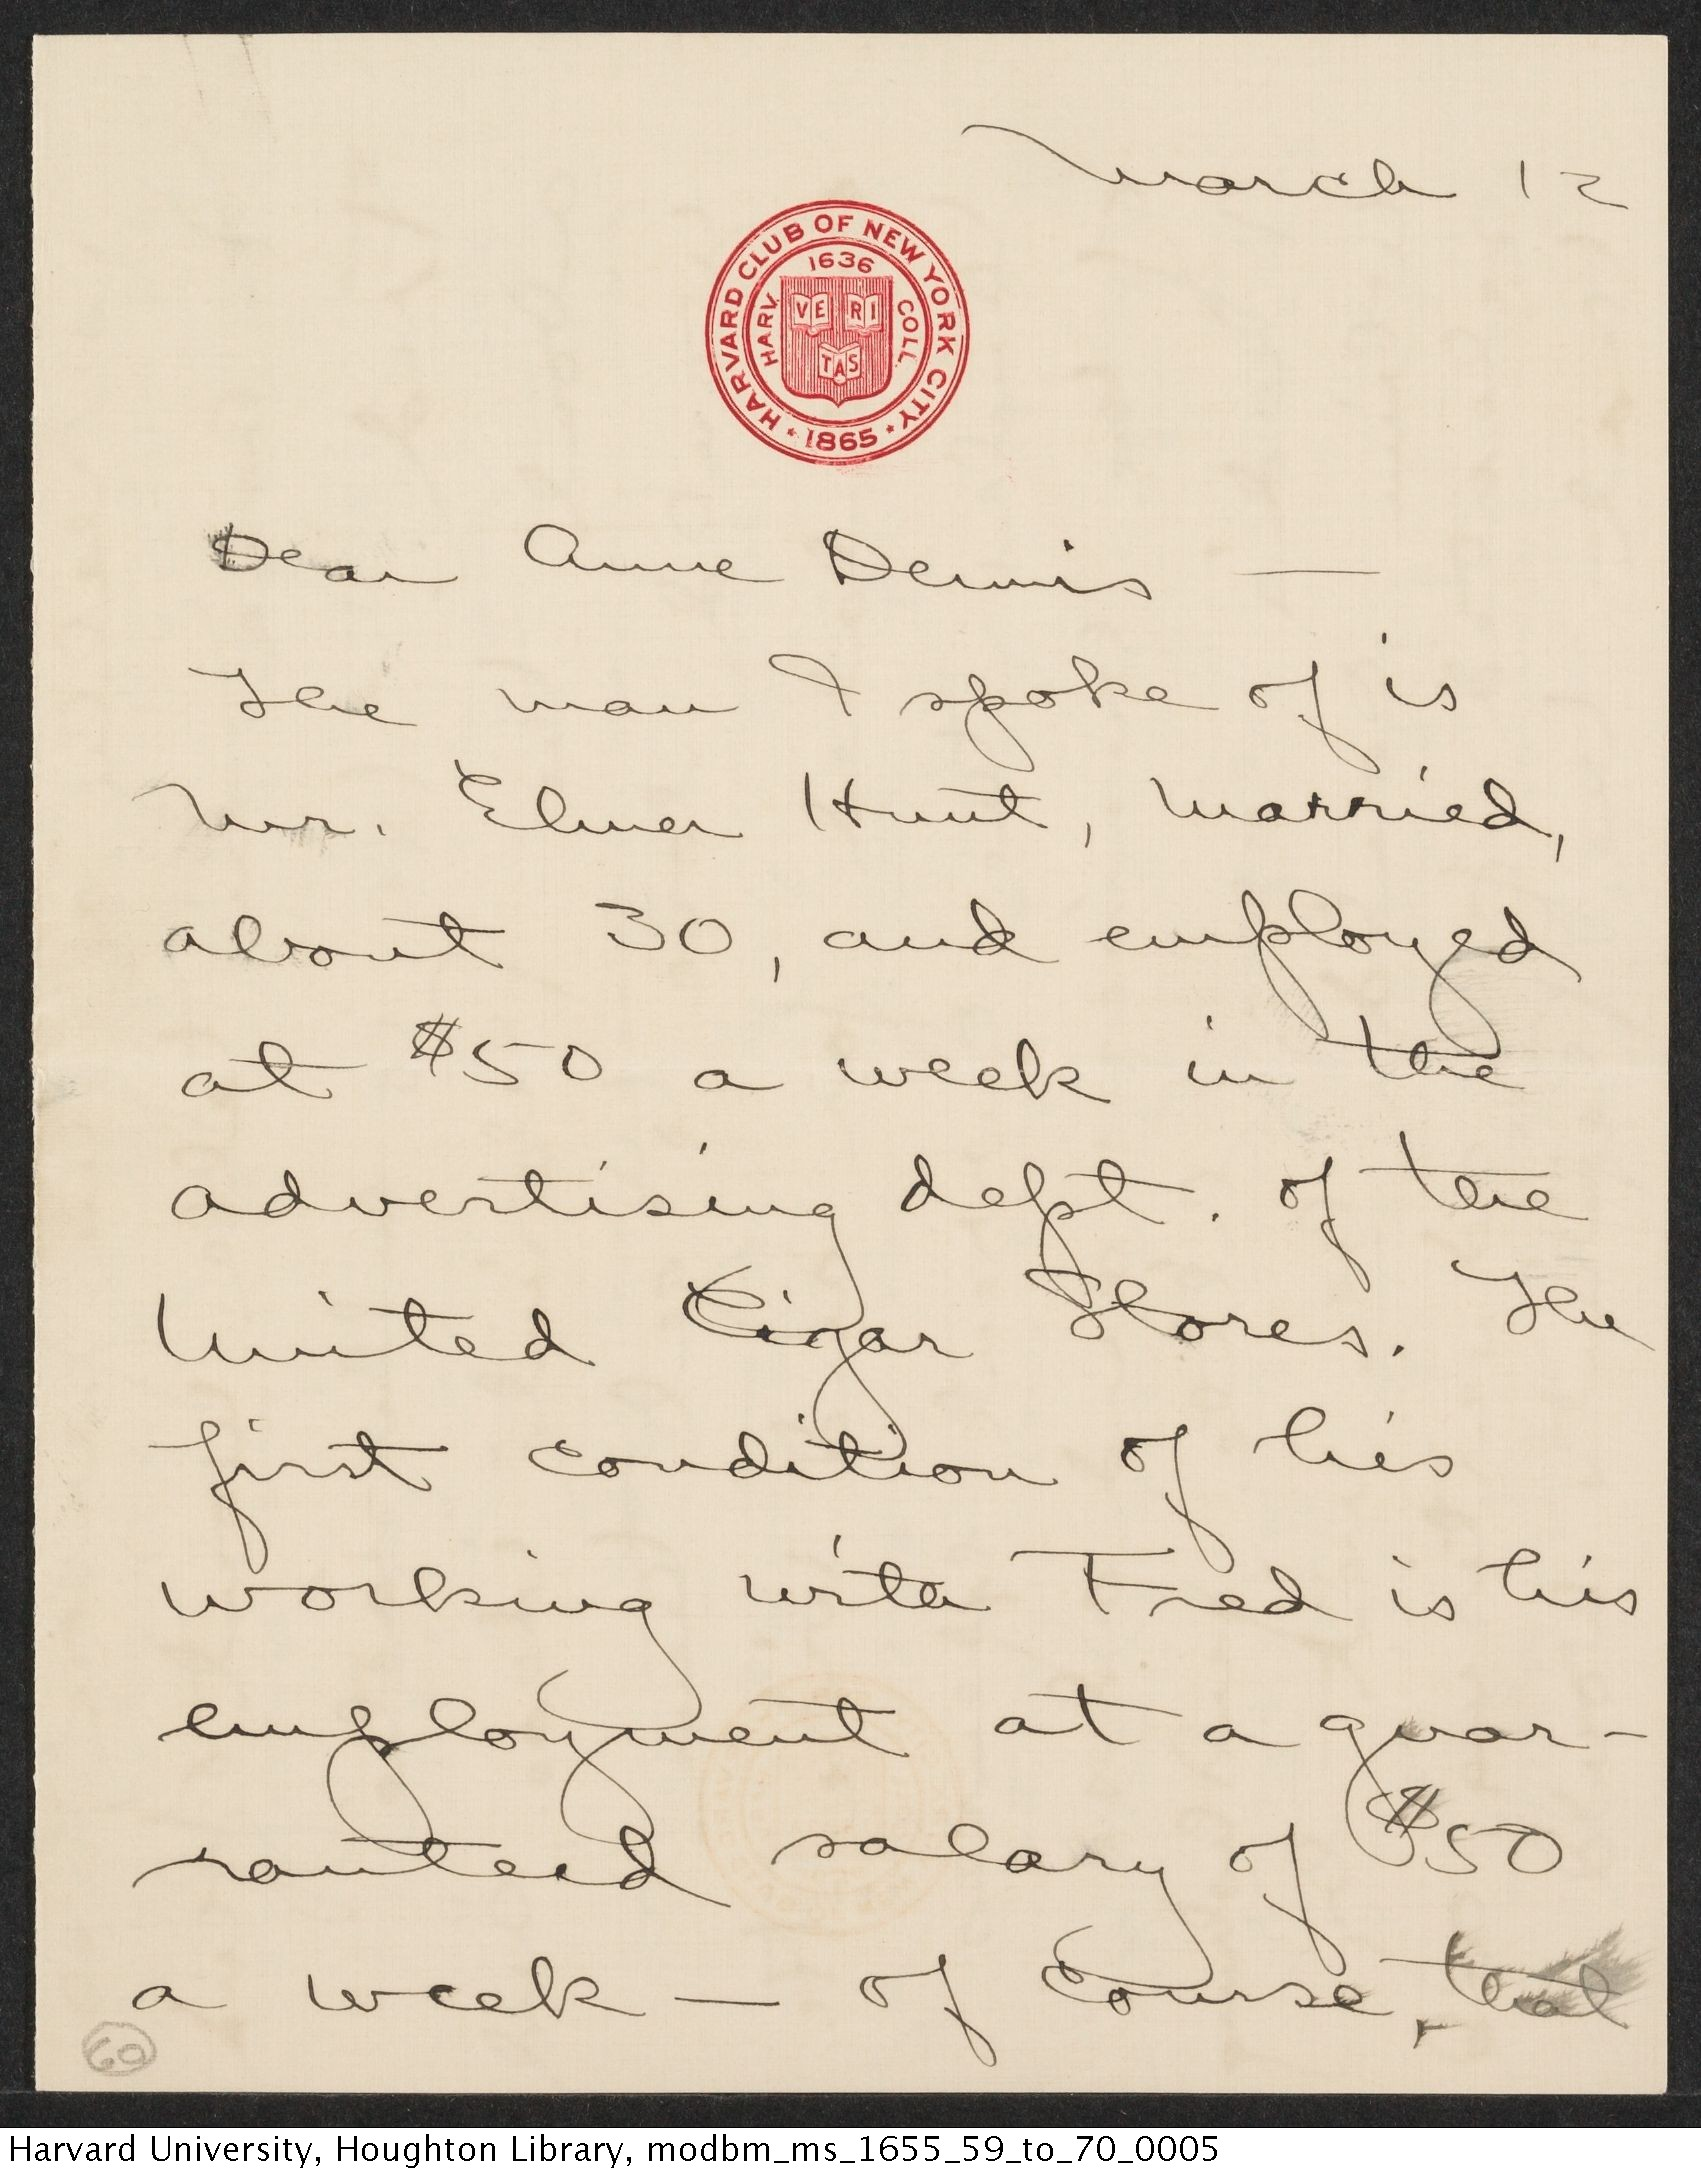 Reed, John, 1887-1920. John Reed additional papers, letters to Anne and Frederick Bursch. MS Am 1655 (60)